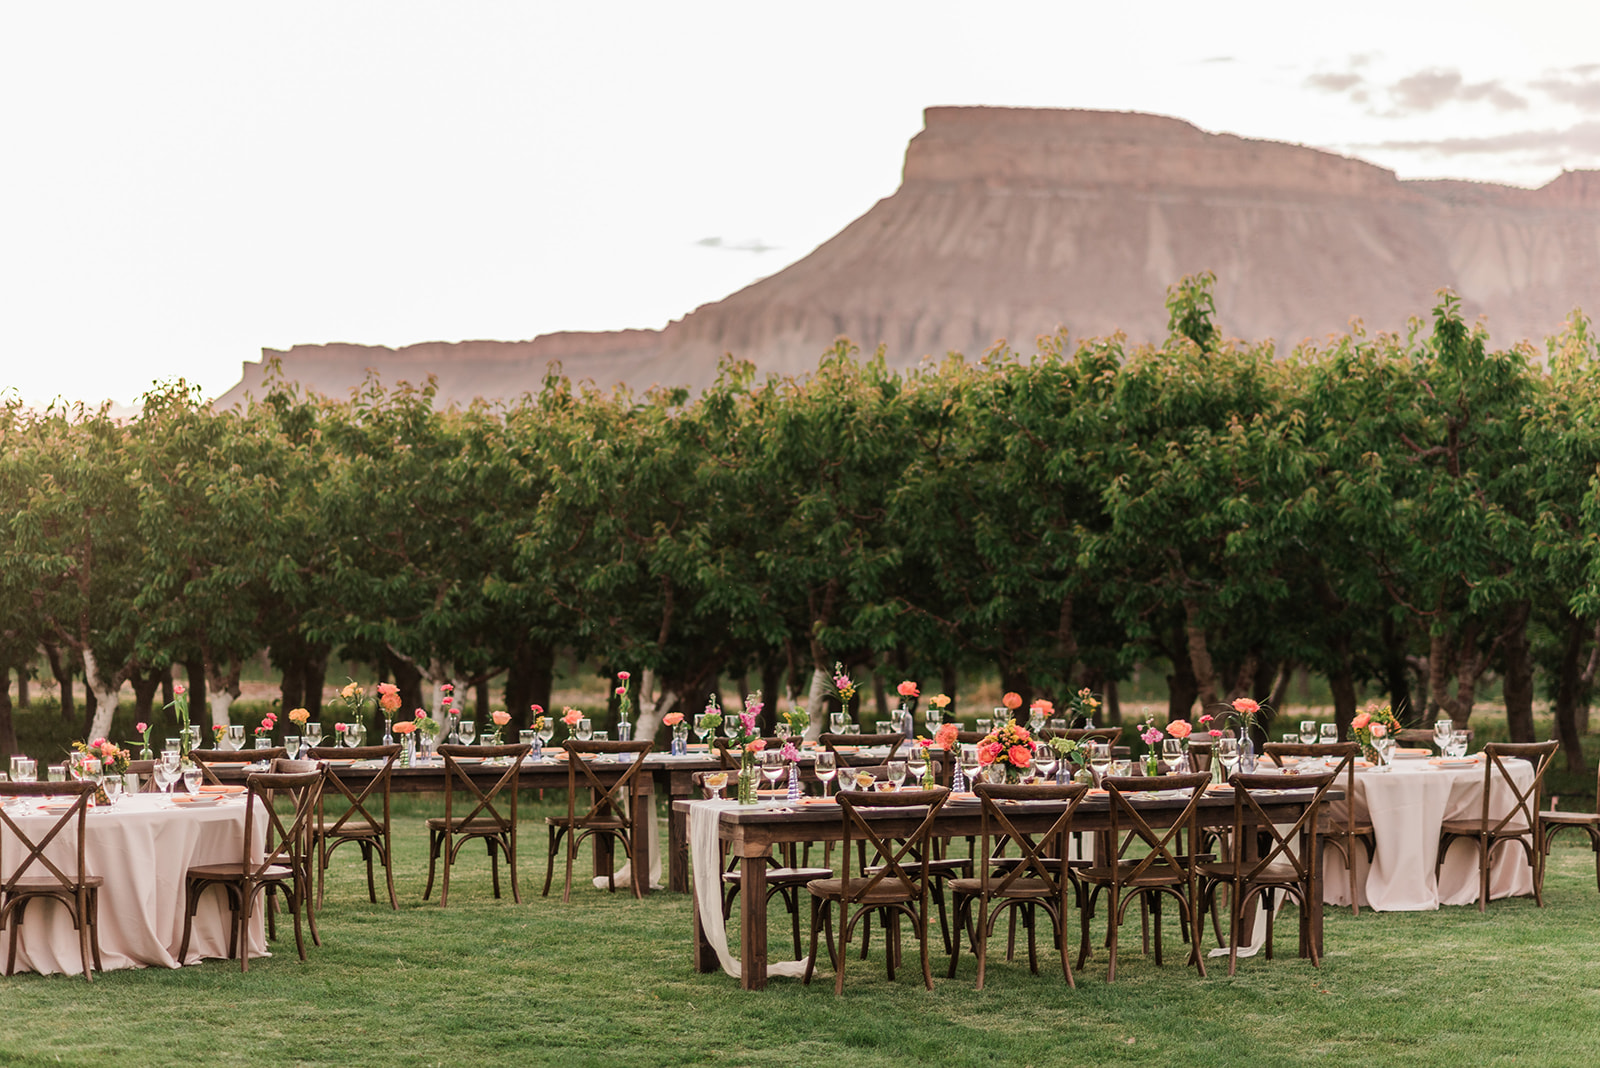 Restoration Vineyards | Winery wedding venue in Palisade, Colorado featured on WED West Slope - a directory for wedding vendors.